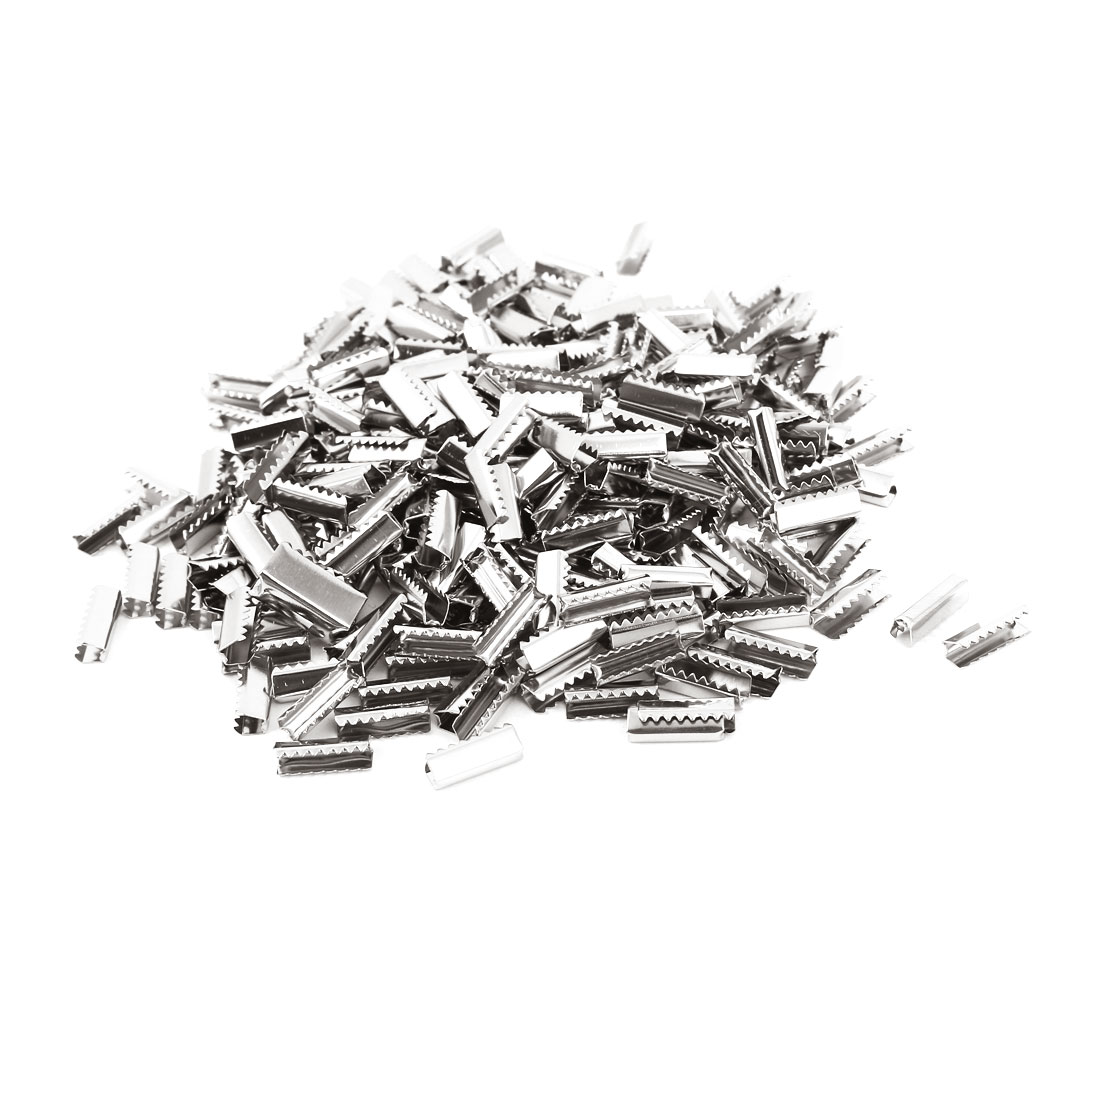 UNICRAFTALE About 500pcs 304 Stainless Steel Ribbon Ends Rectangle Pinch Crimp Clamp Ribbon Bracelet Bookmark for DIY Necklace Bracelet Making 6x6x4mm Hole 1mm